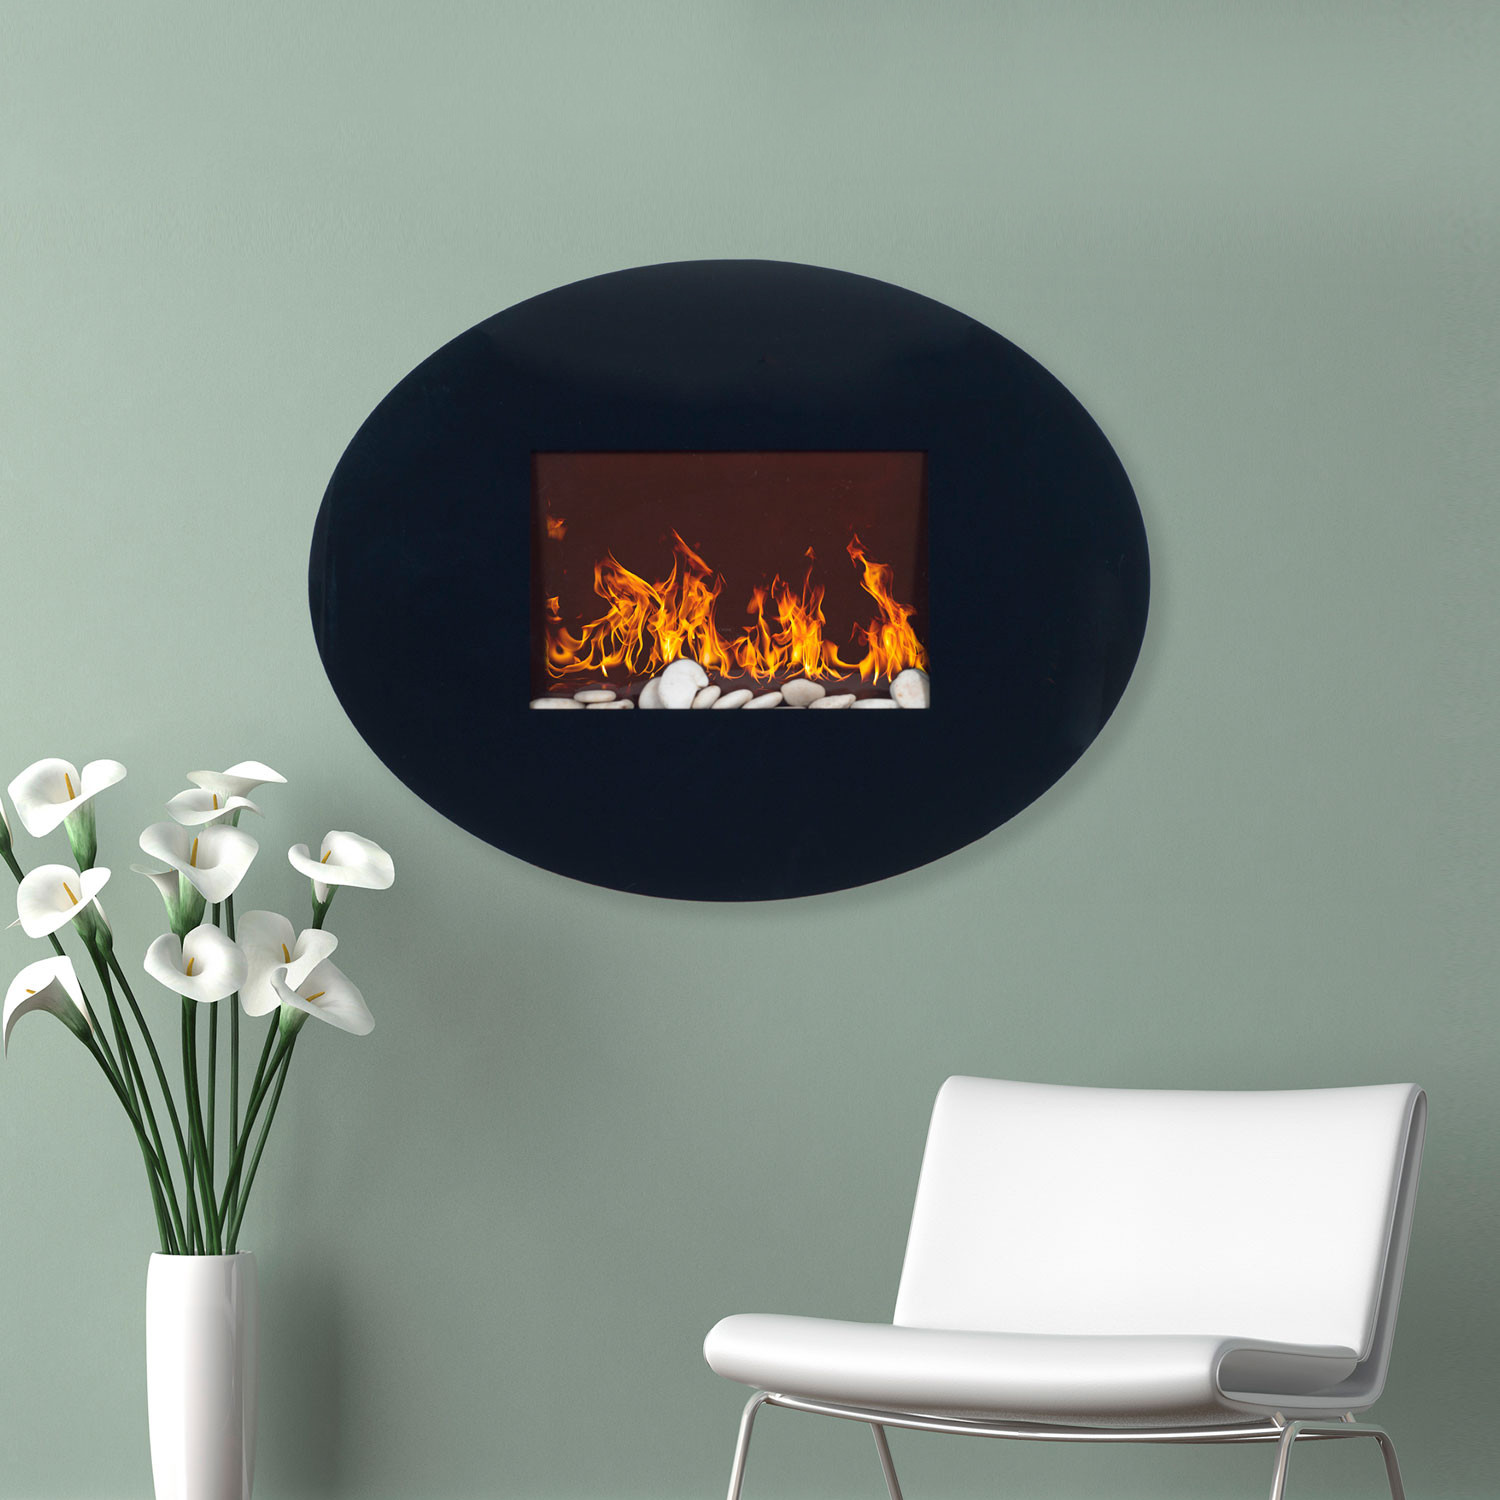 Northwest Wall Mounted Electric Fireplace Remote Oval Glass